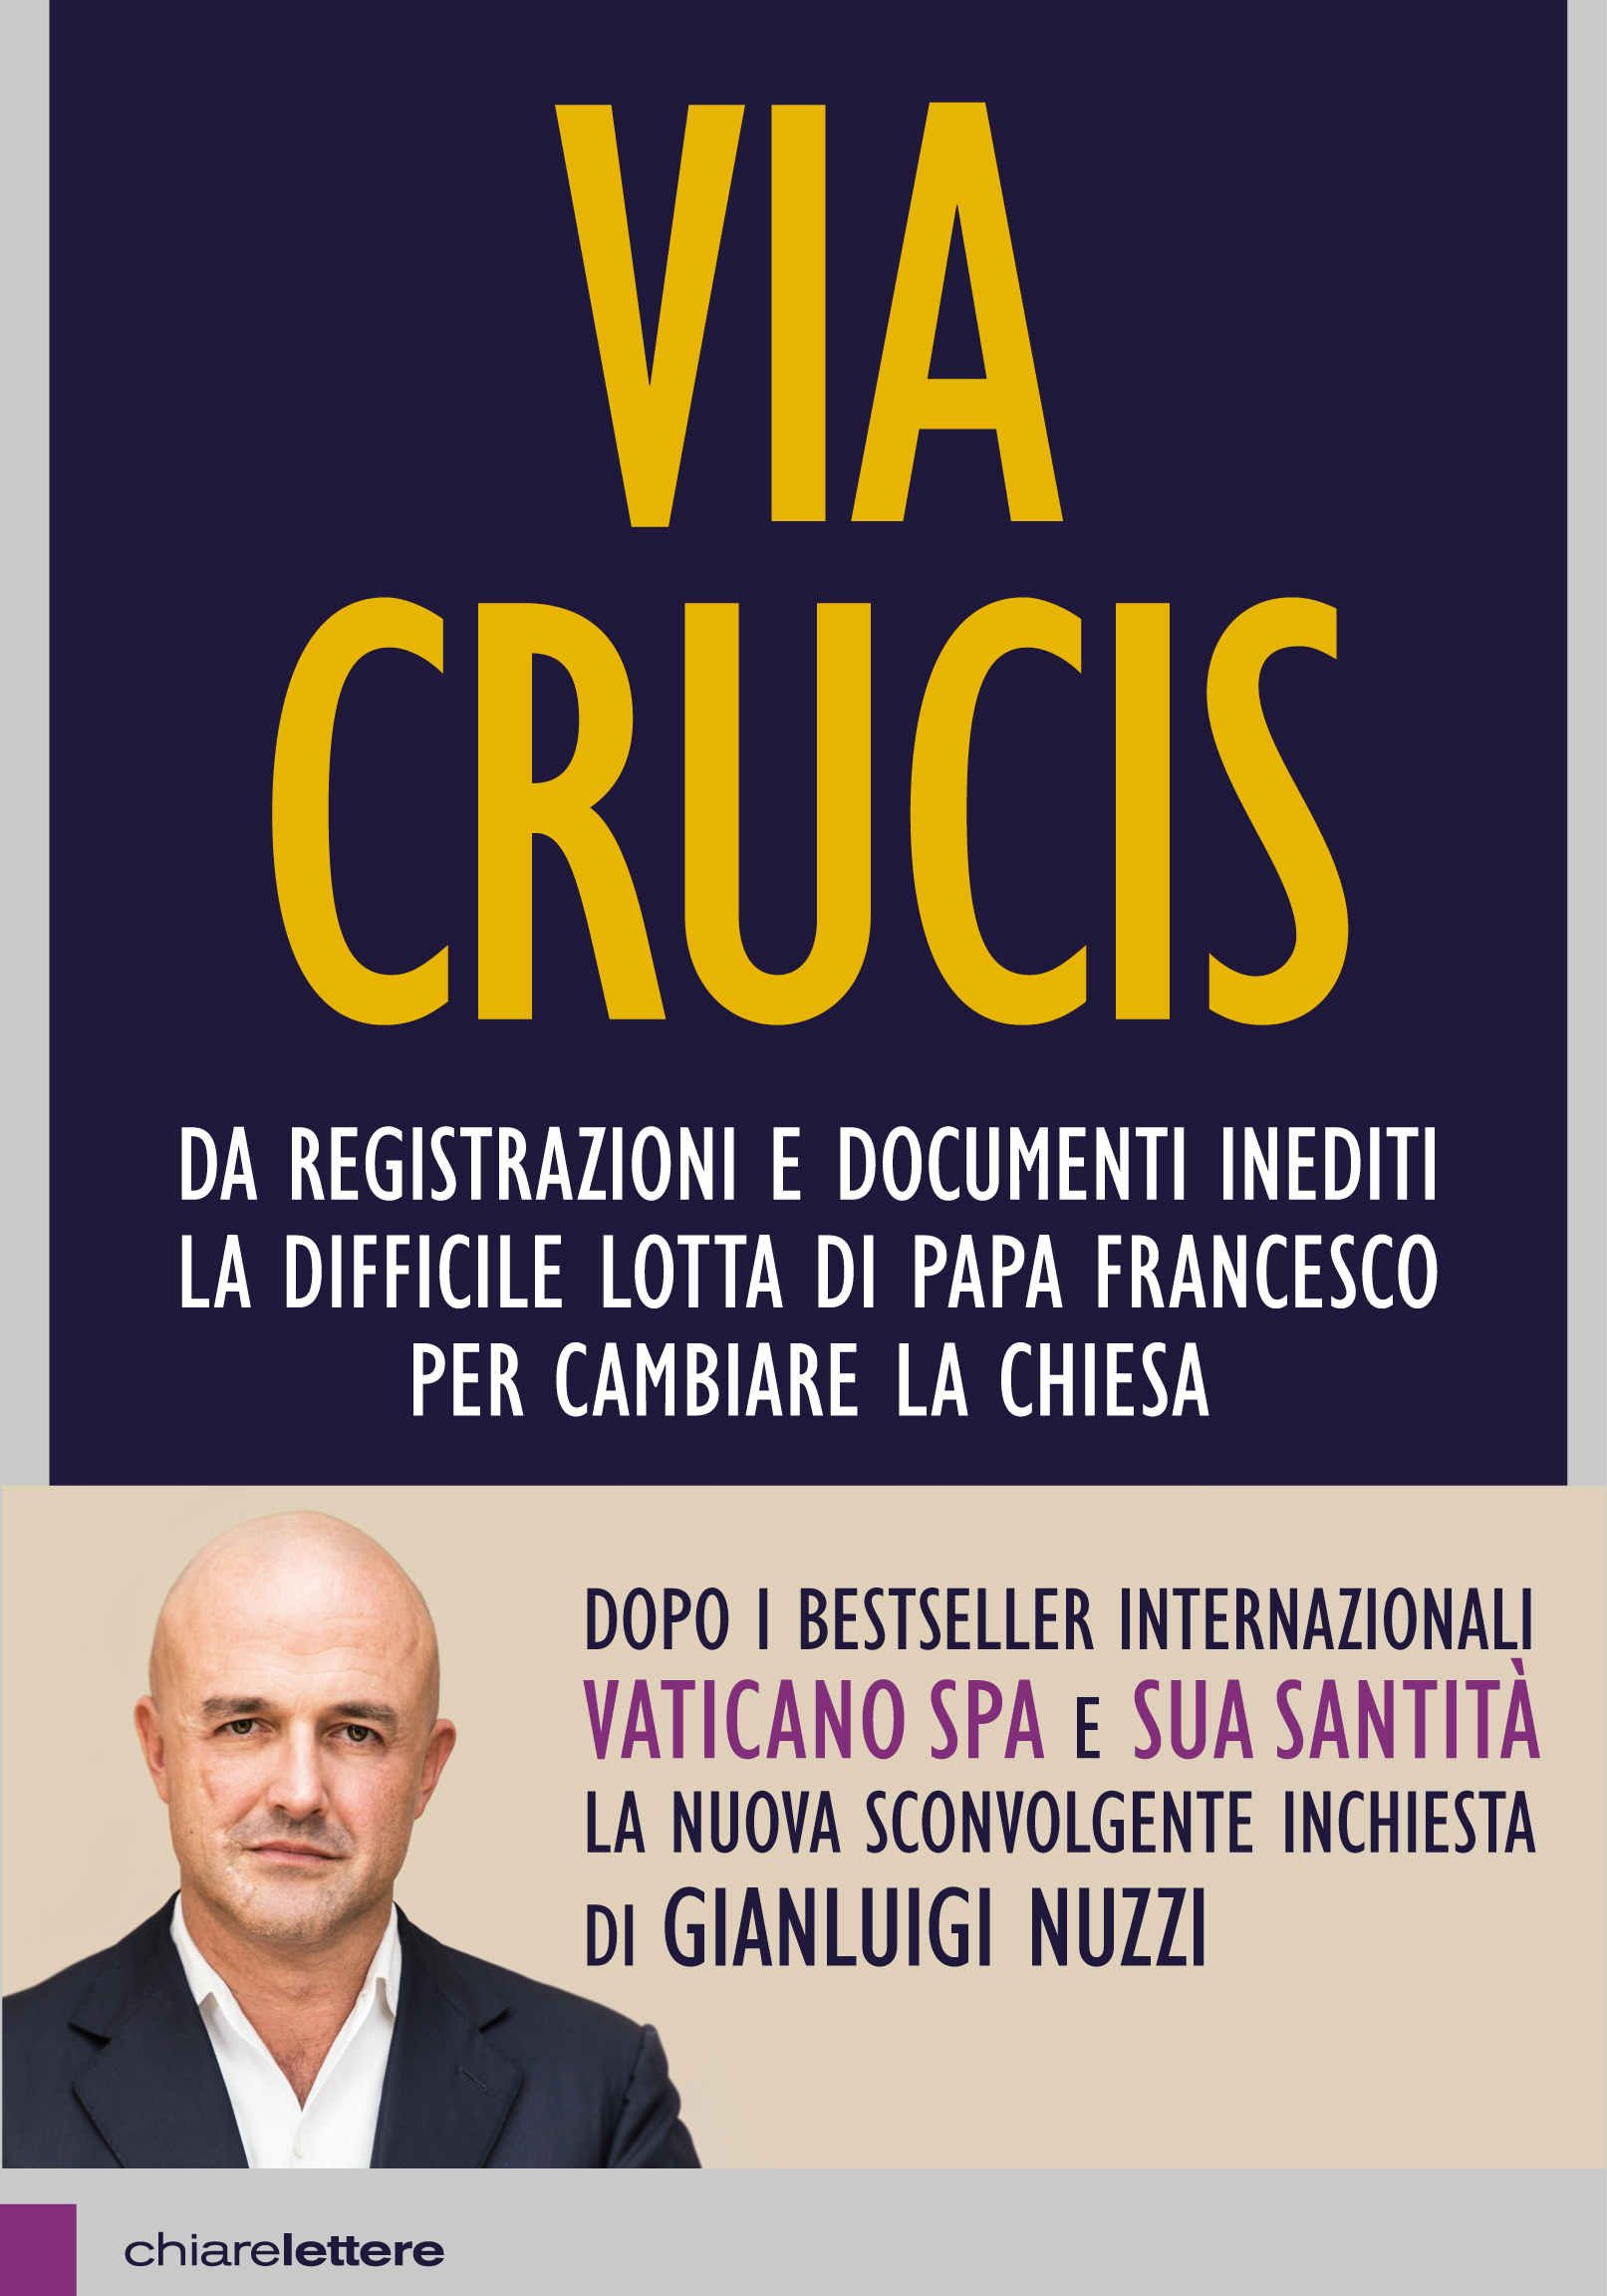 via crucis cover